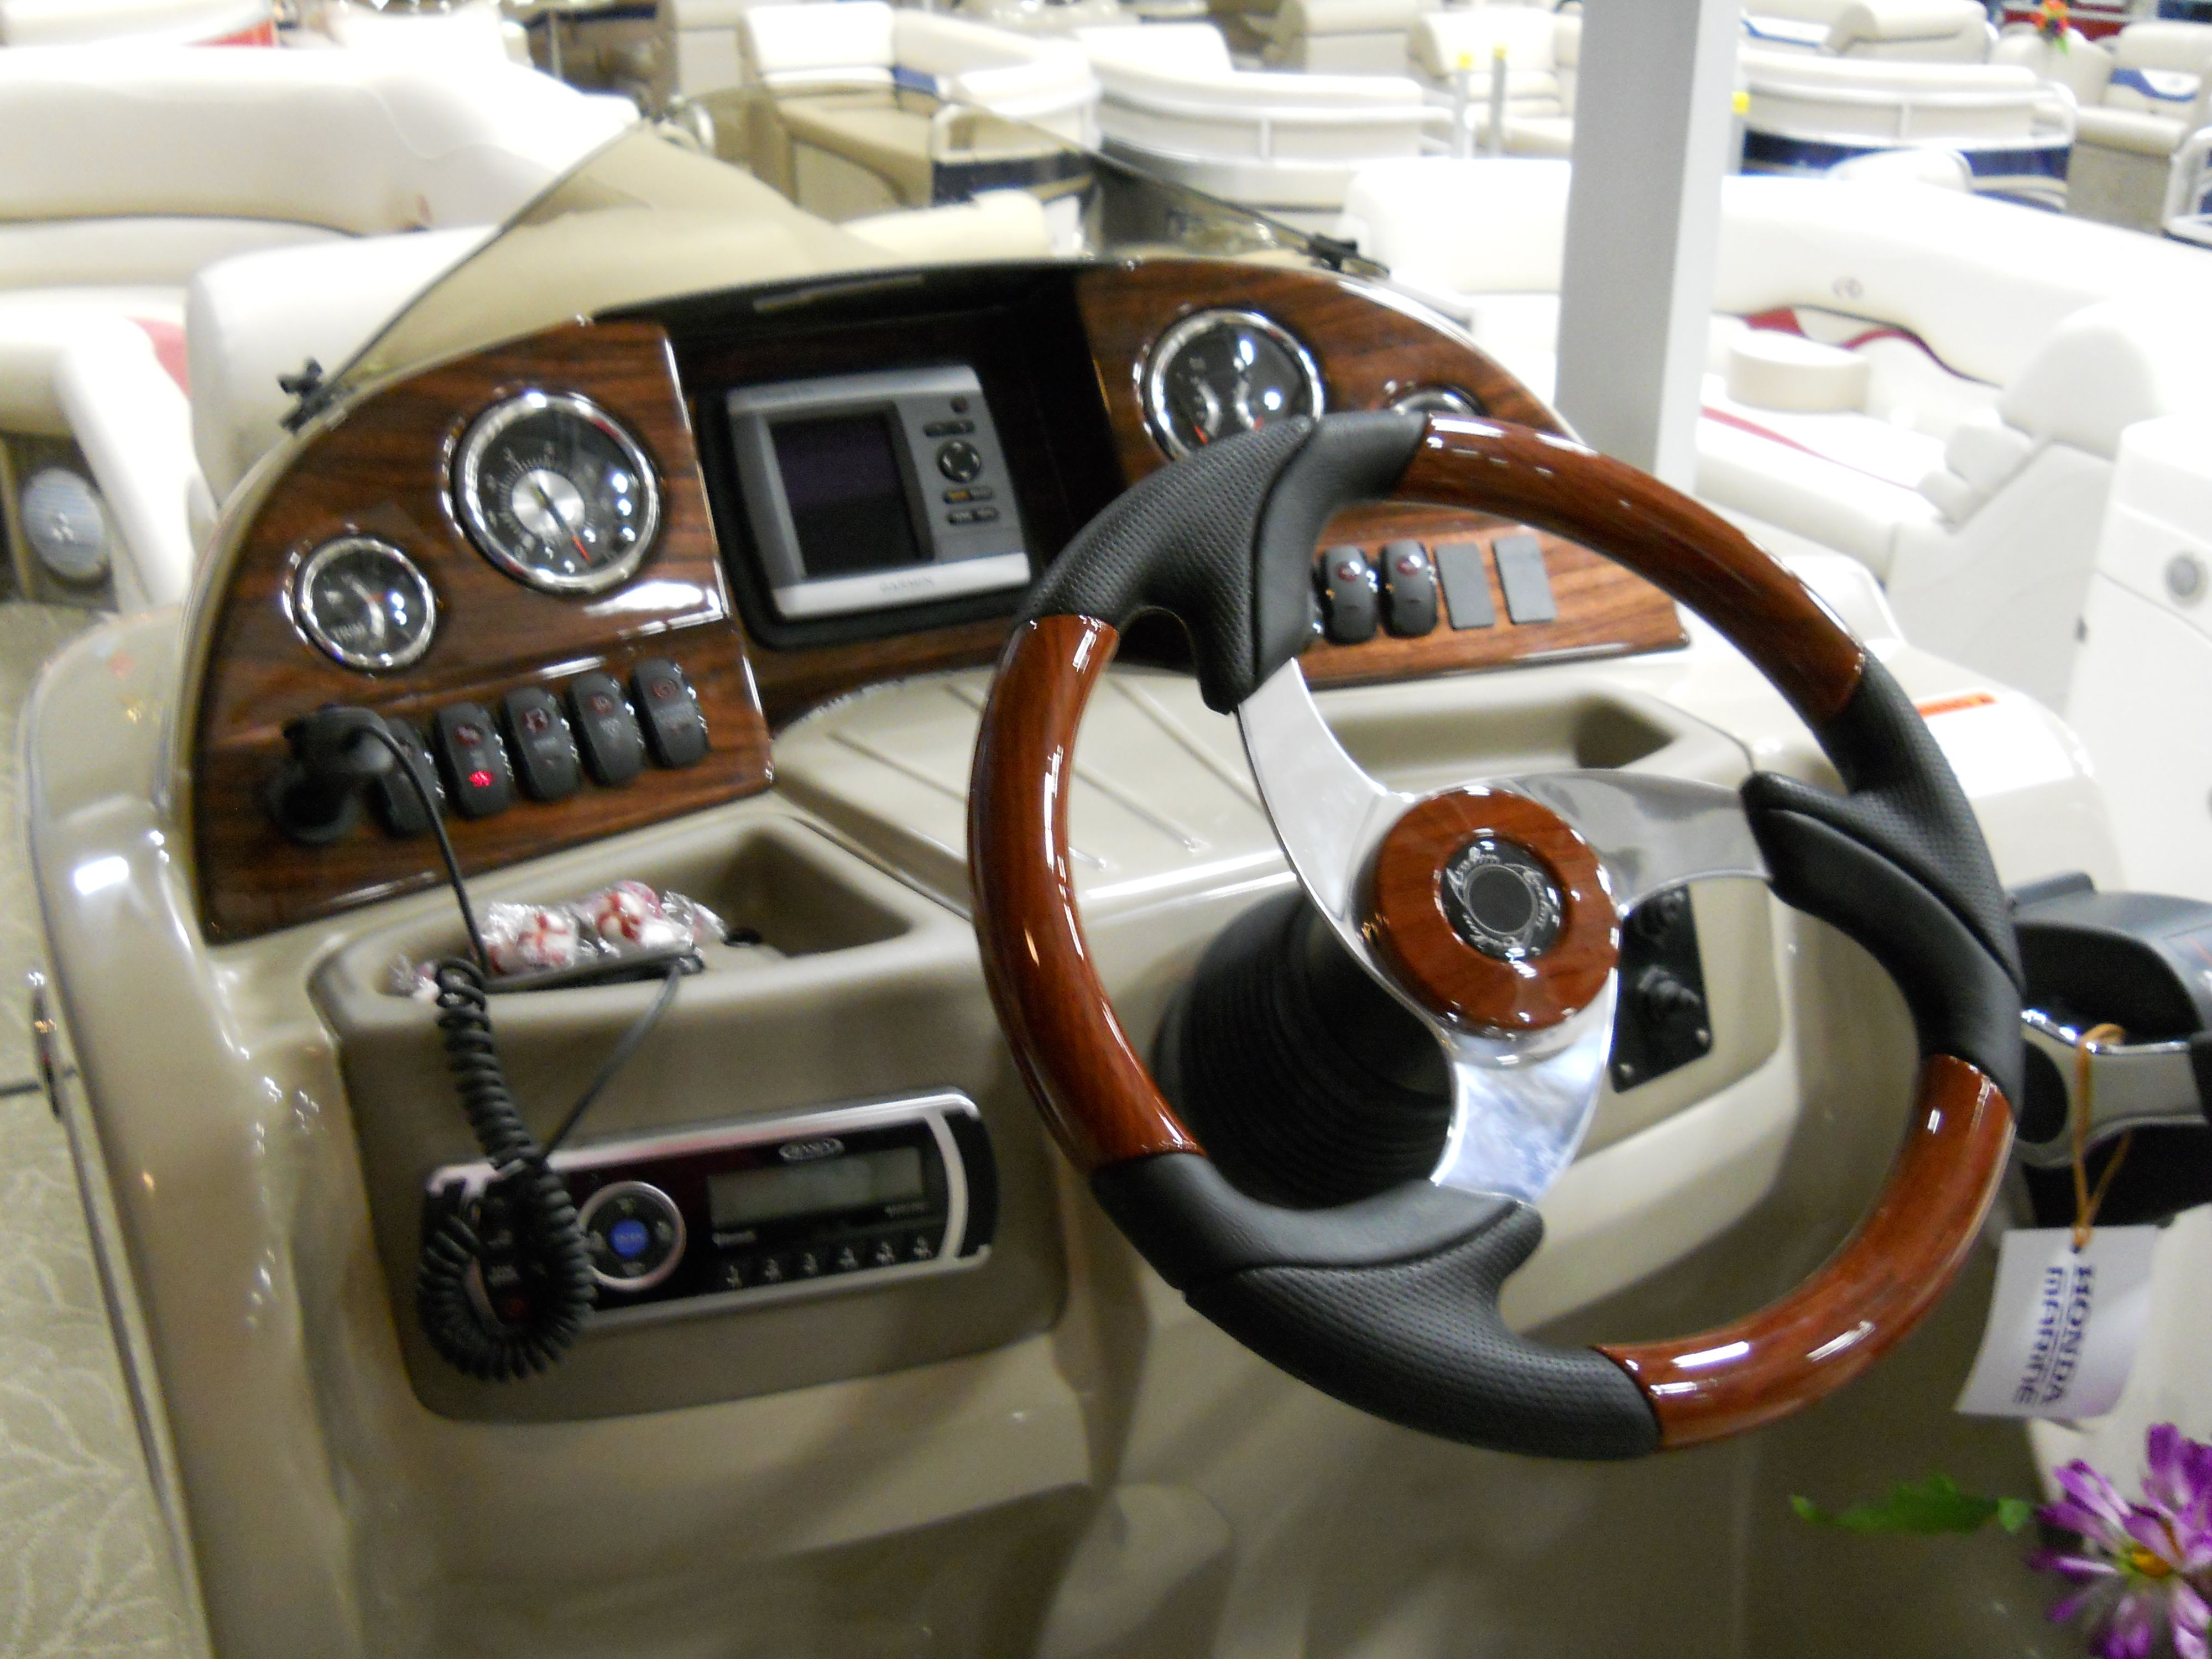 dashboard of the avalon pontoon fishing pontoon boats these avalon luxury pontoon boats bring new heights of design and style to the funship and windjammer lounger if you enjoyed this video please leave a